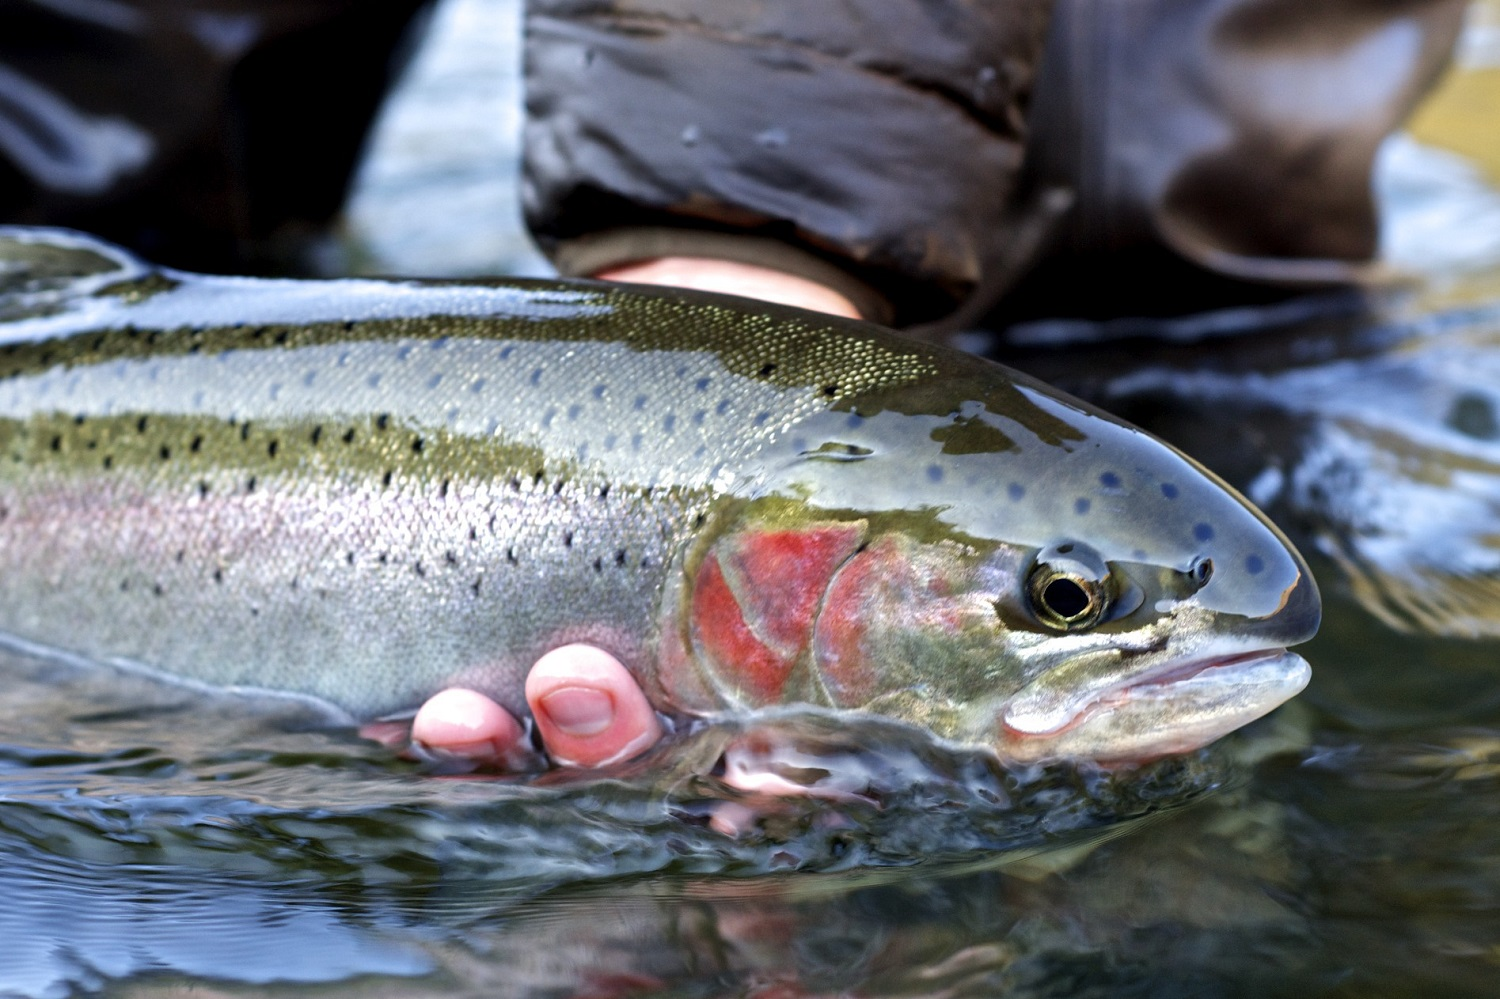 Steelhead trout being released in a lake